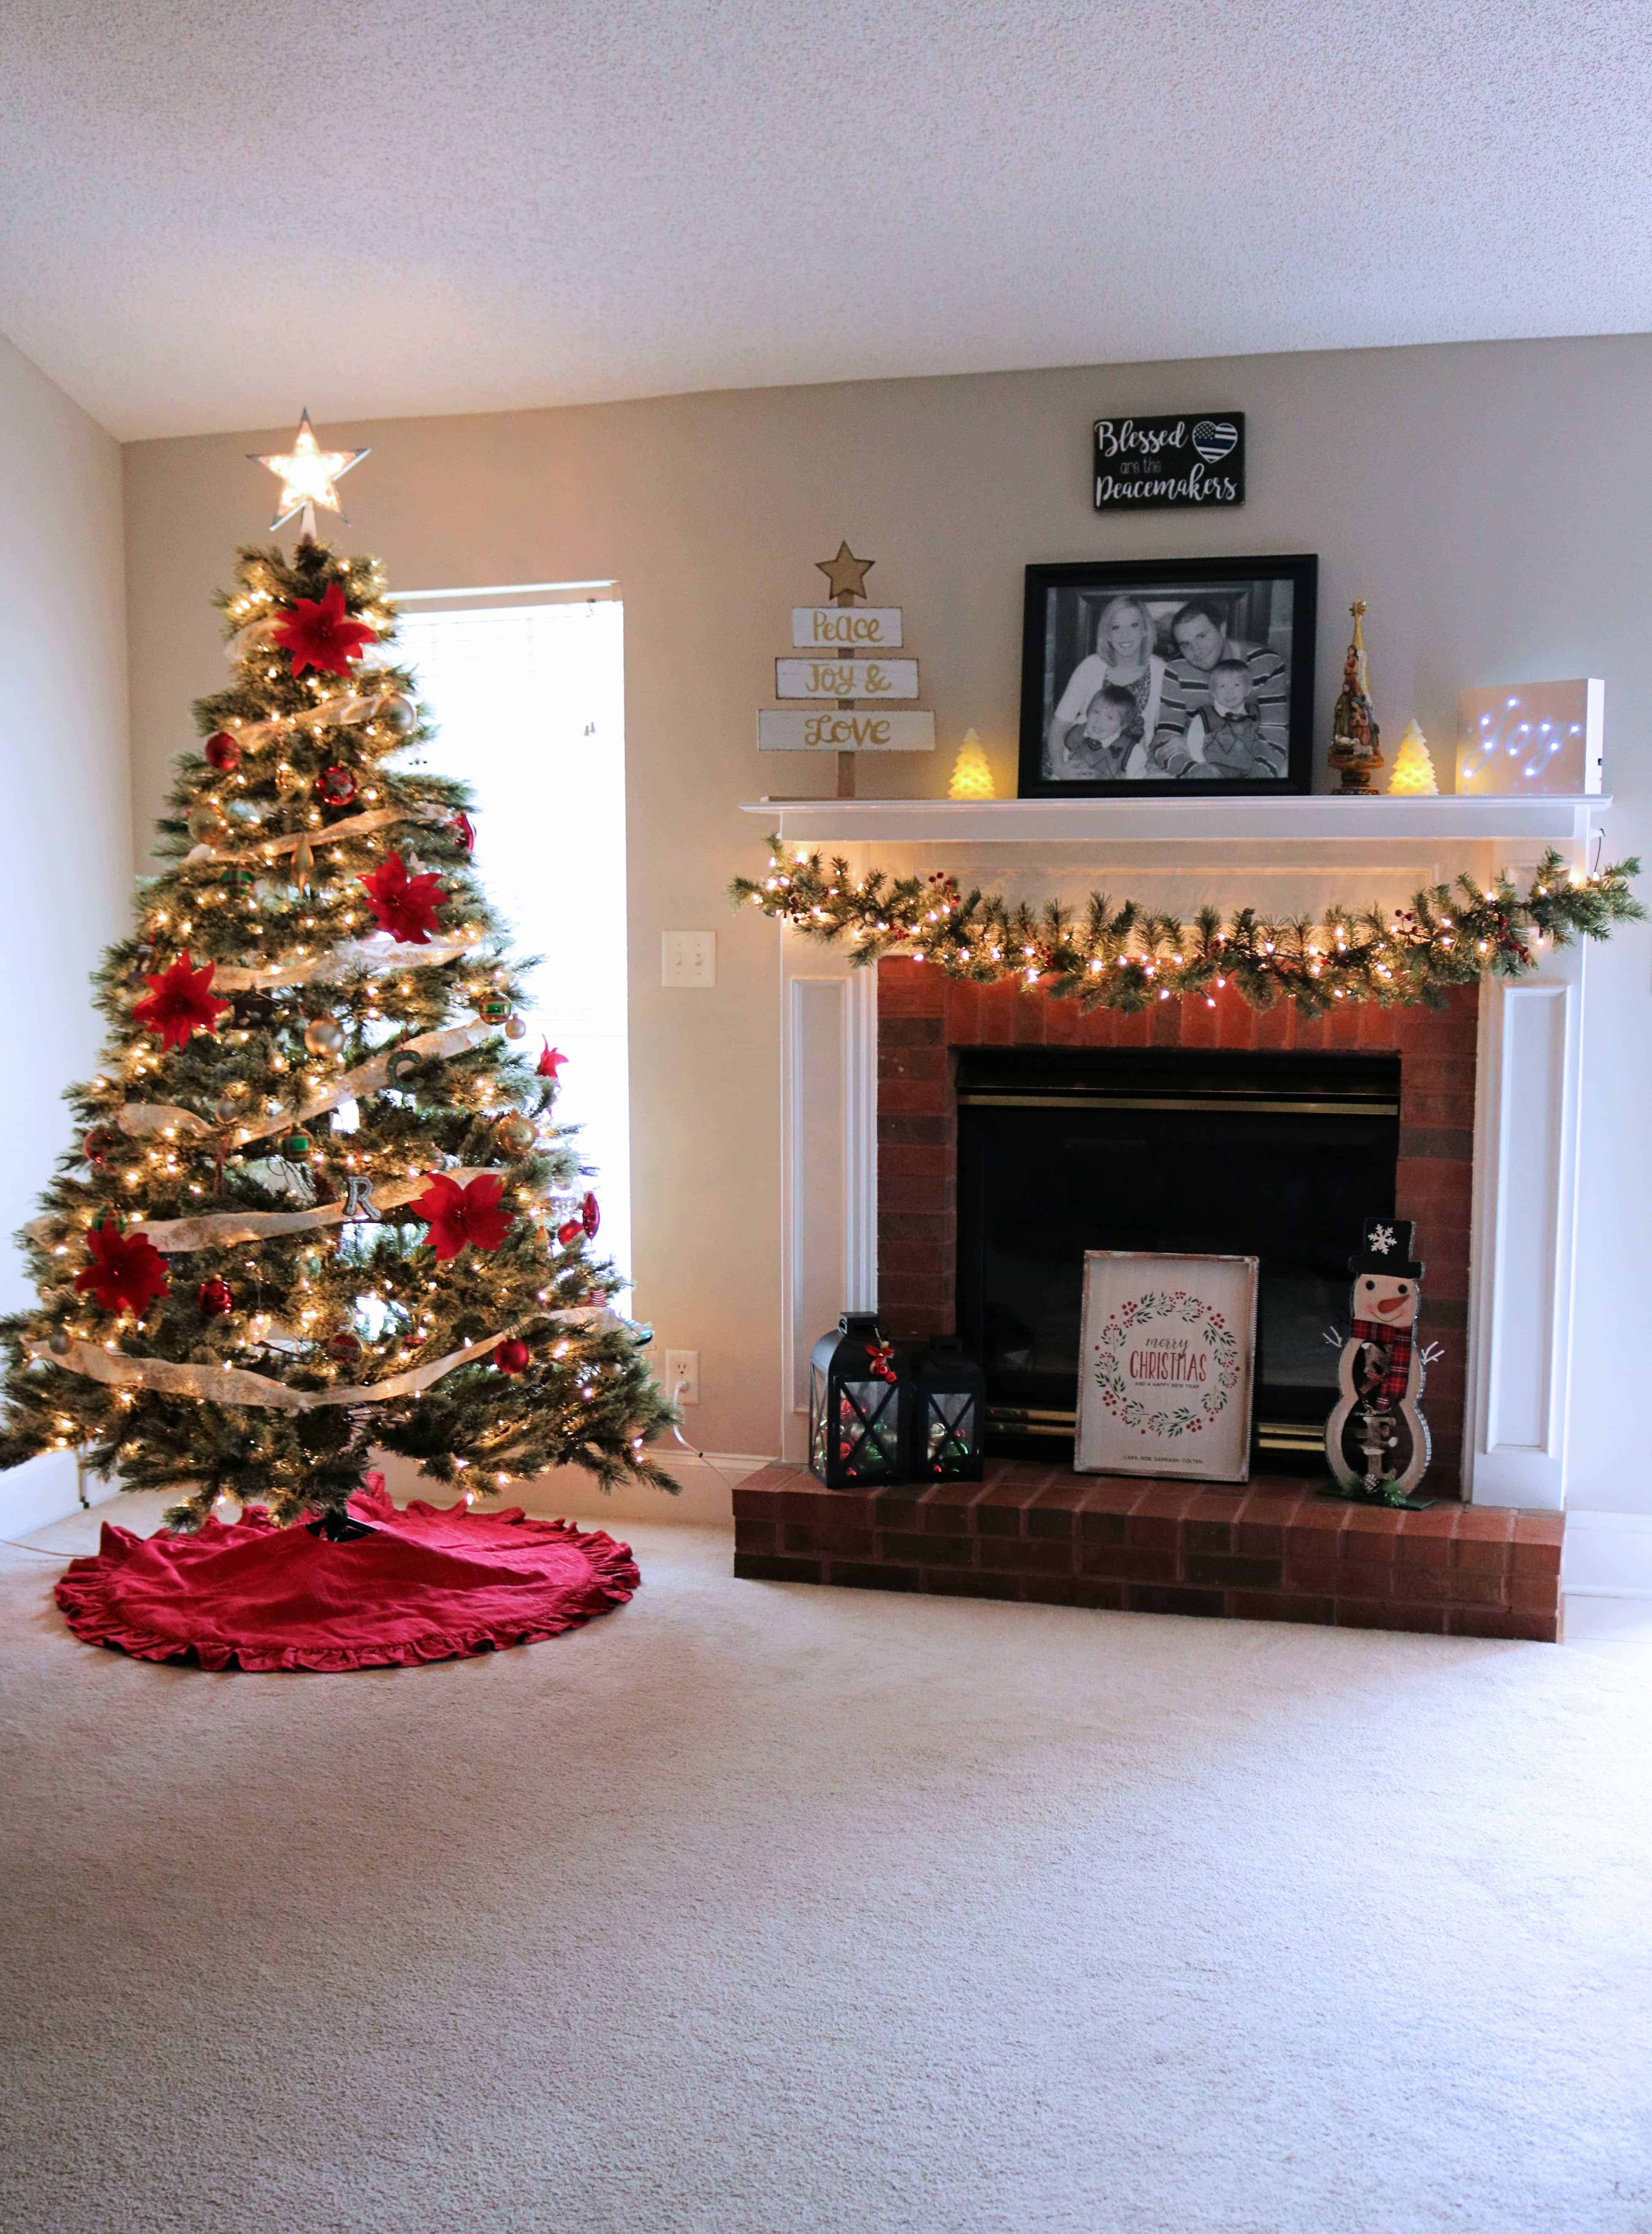 Personalized Christmas Decorating Ideas - Kindly Unspoken